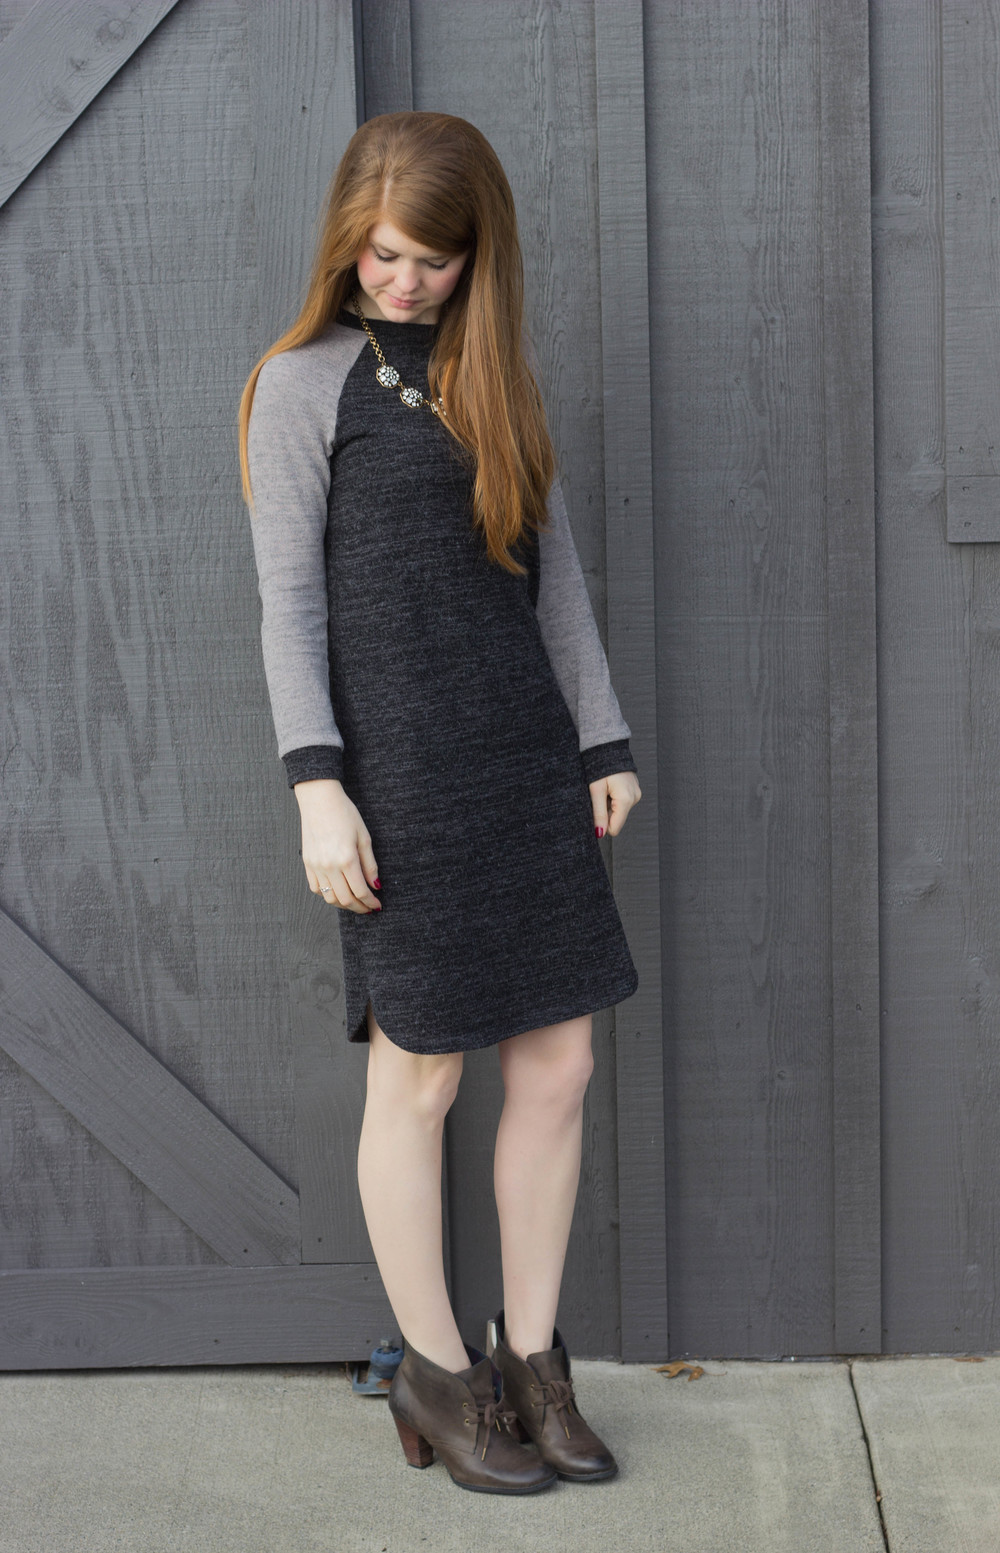 grey sweater dress, indigo by clarks booties, j crew rhinestone statement necklace, barn, falls city, washington, seattle travel guide